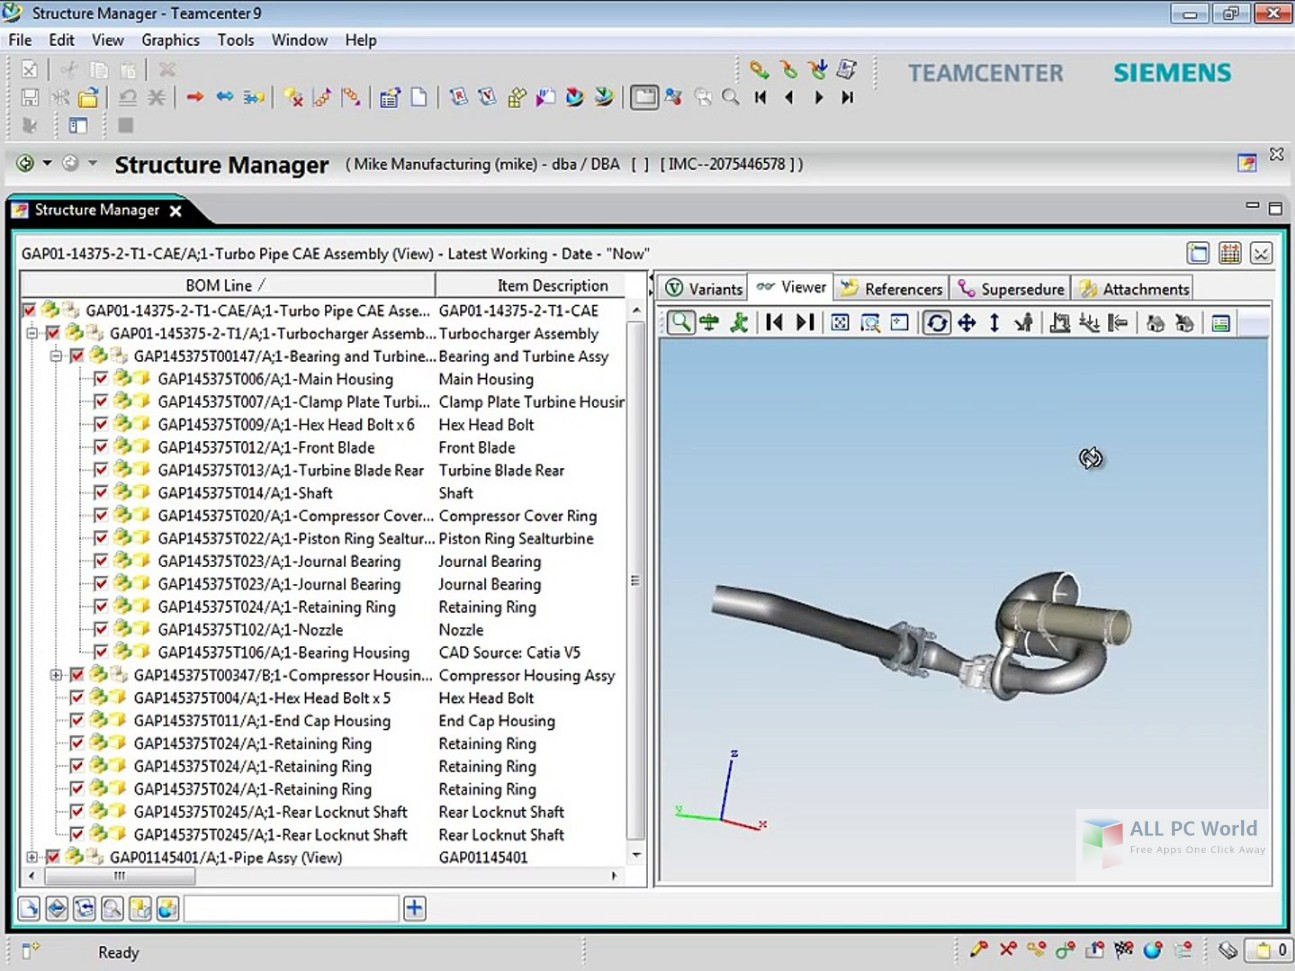 Siemens PLM TeamCenter 9.1